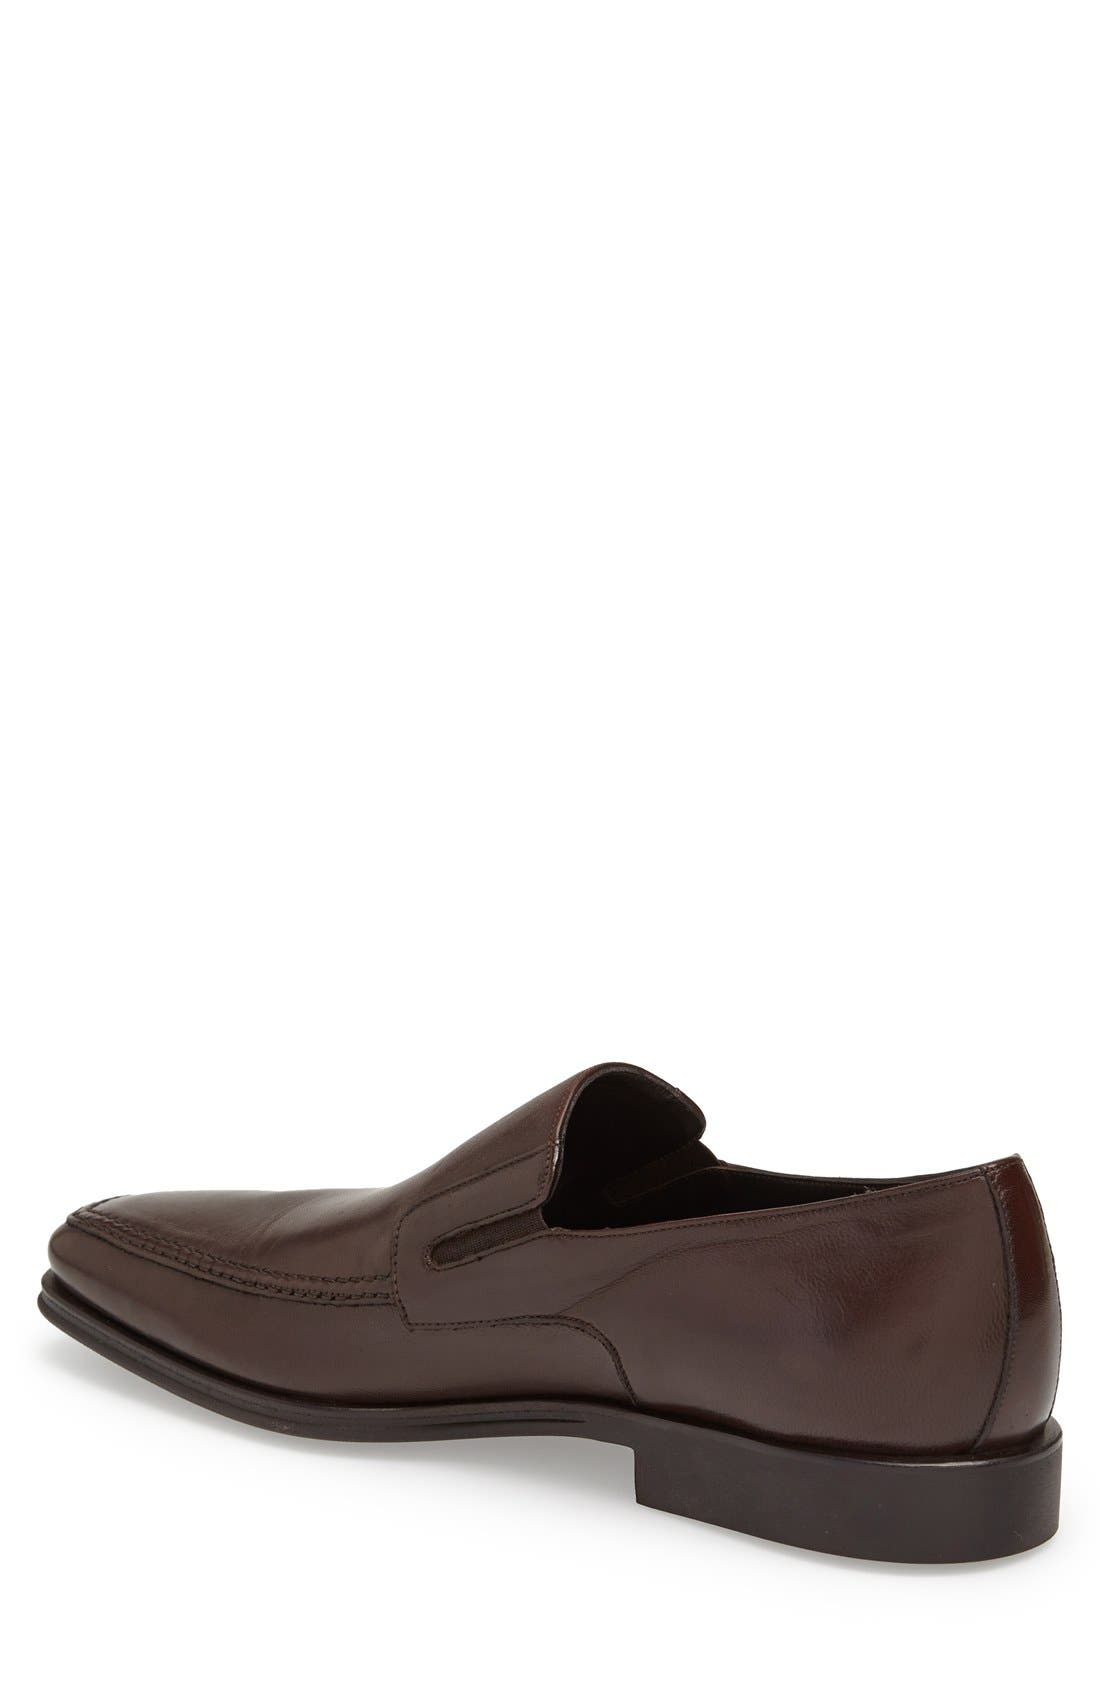 Alternate Image 2  - Bruno Magli 'Raging' Loafer (Men)